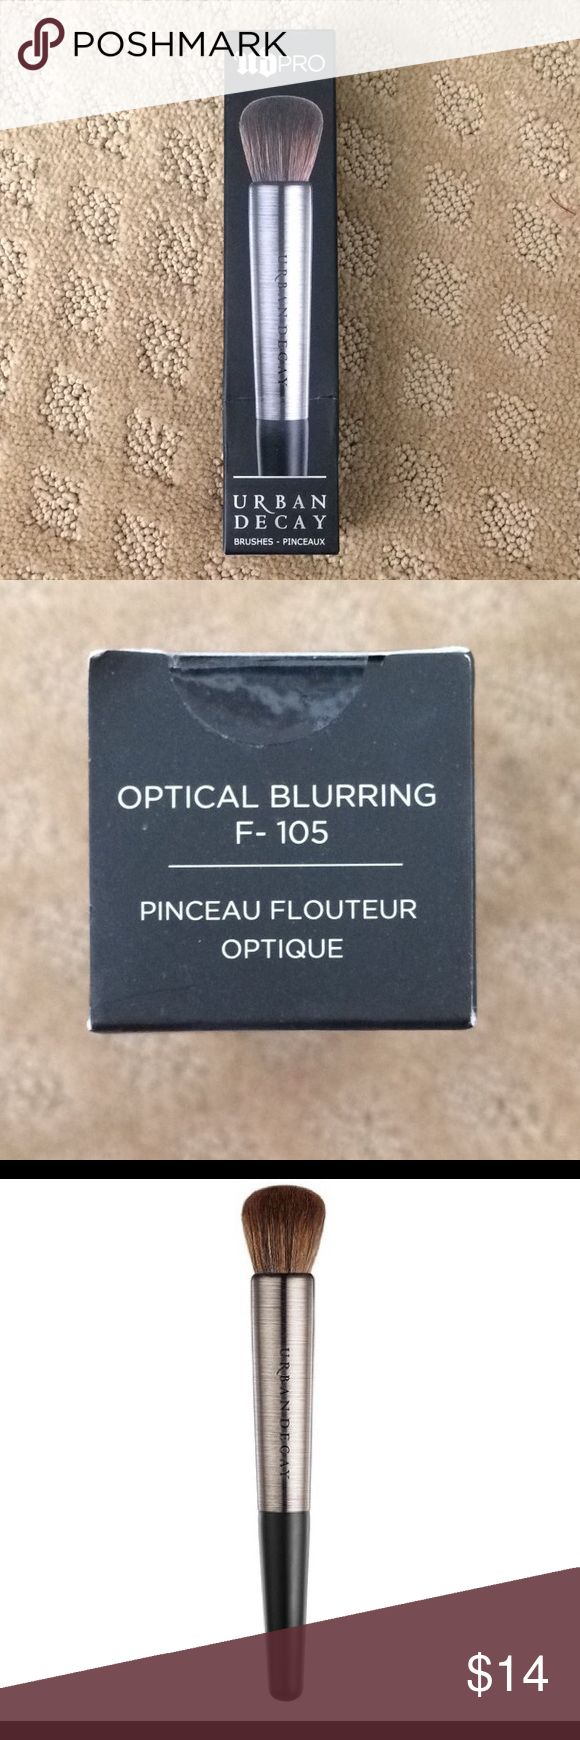 Optical blurring brush by Urban Decay Amazing brush for applying foundation. Can also be used to contour or to apply blush. Product is vegan. Item is brand new and authentic. The box has never been opened. Urban Decay Makeup Brushes & Tools